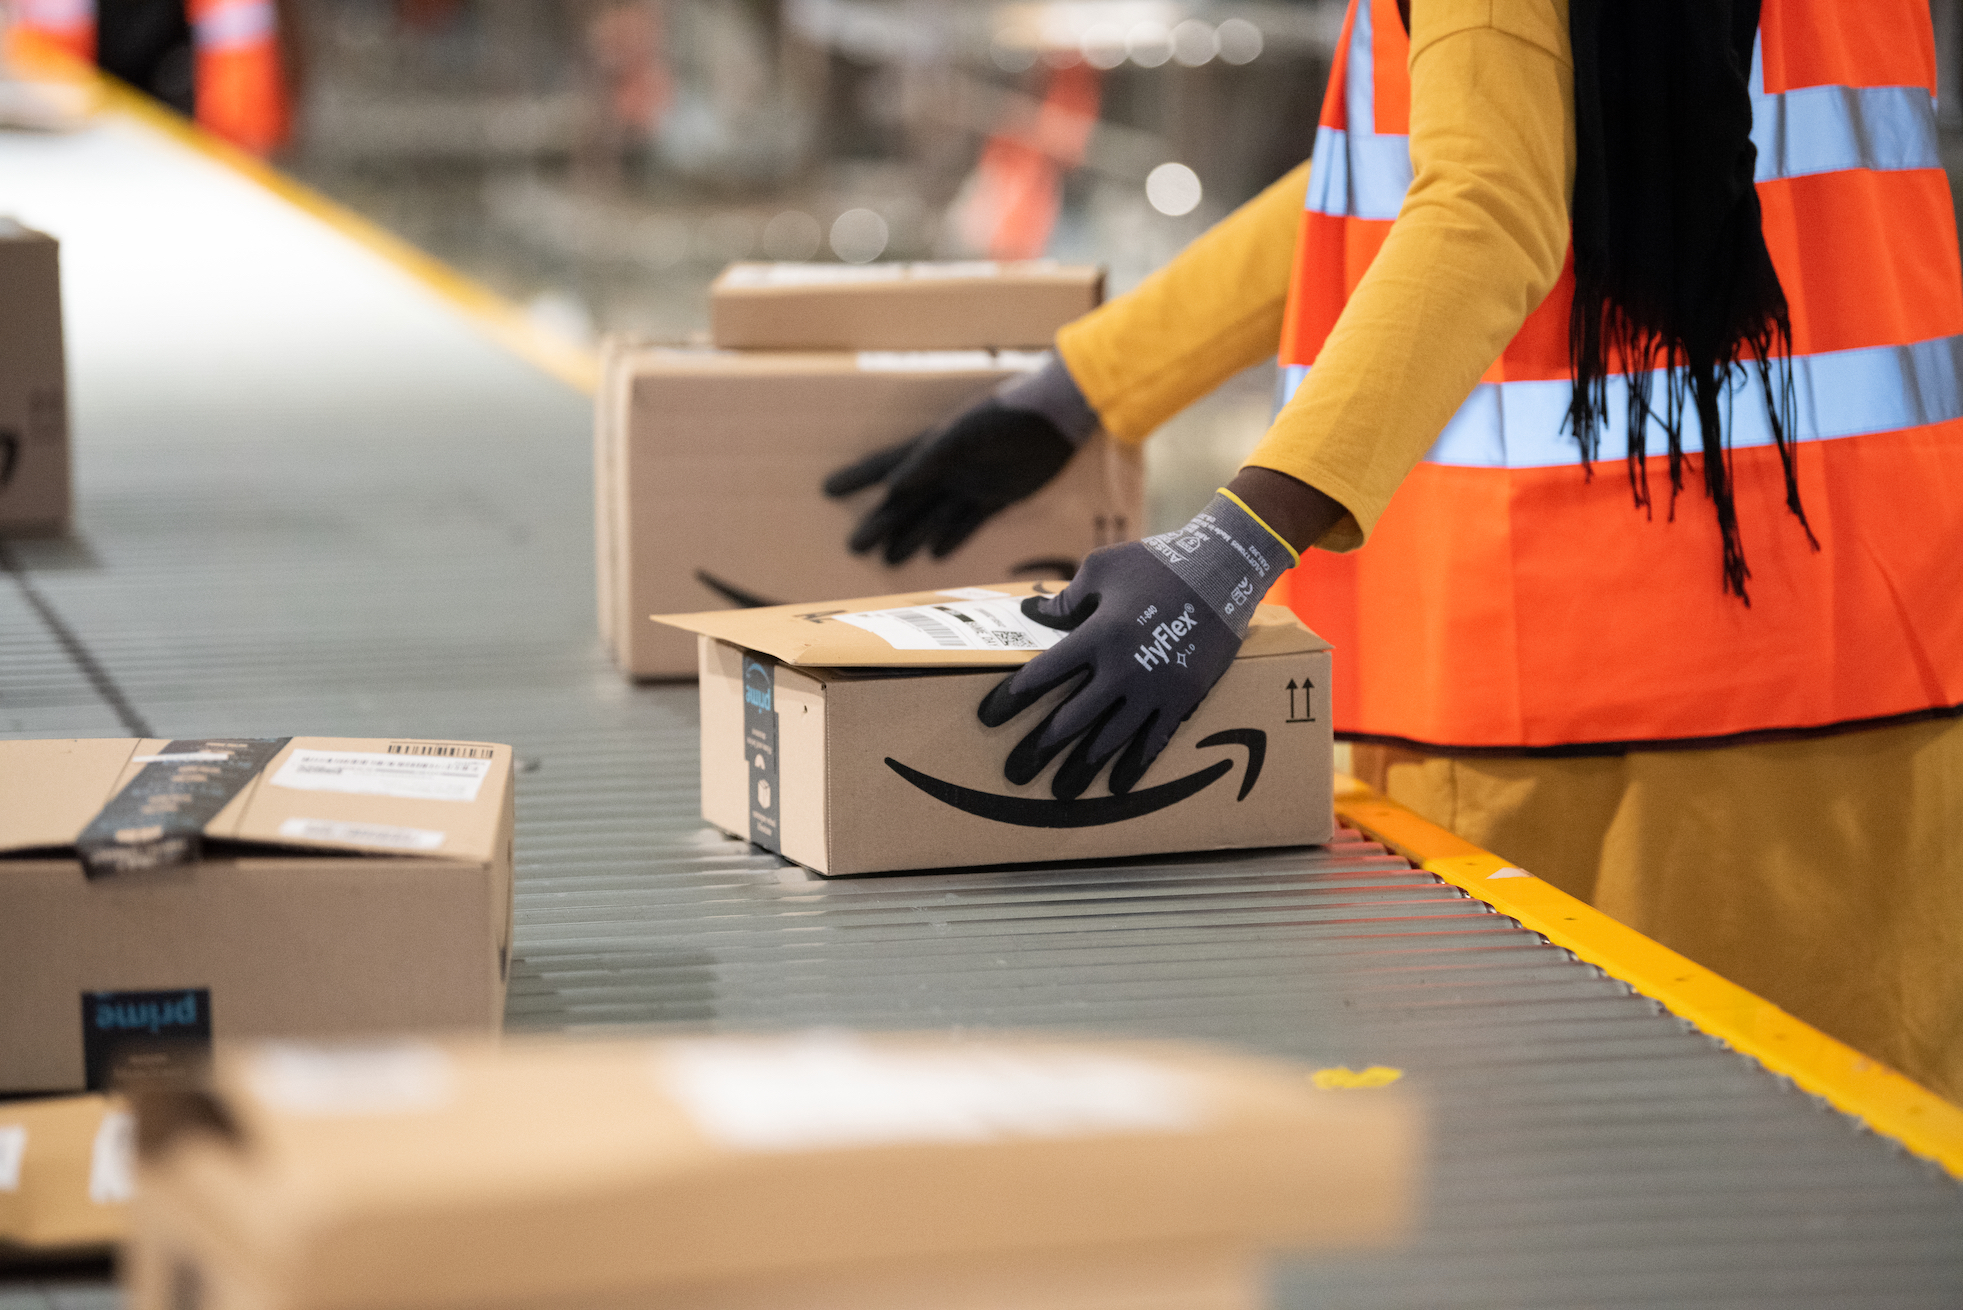 Selling Through Amazon: The 5 Must-Have Cloud Integration & Inventory Apps to Use